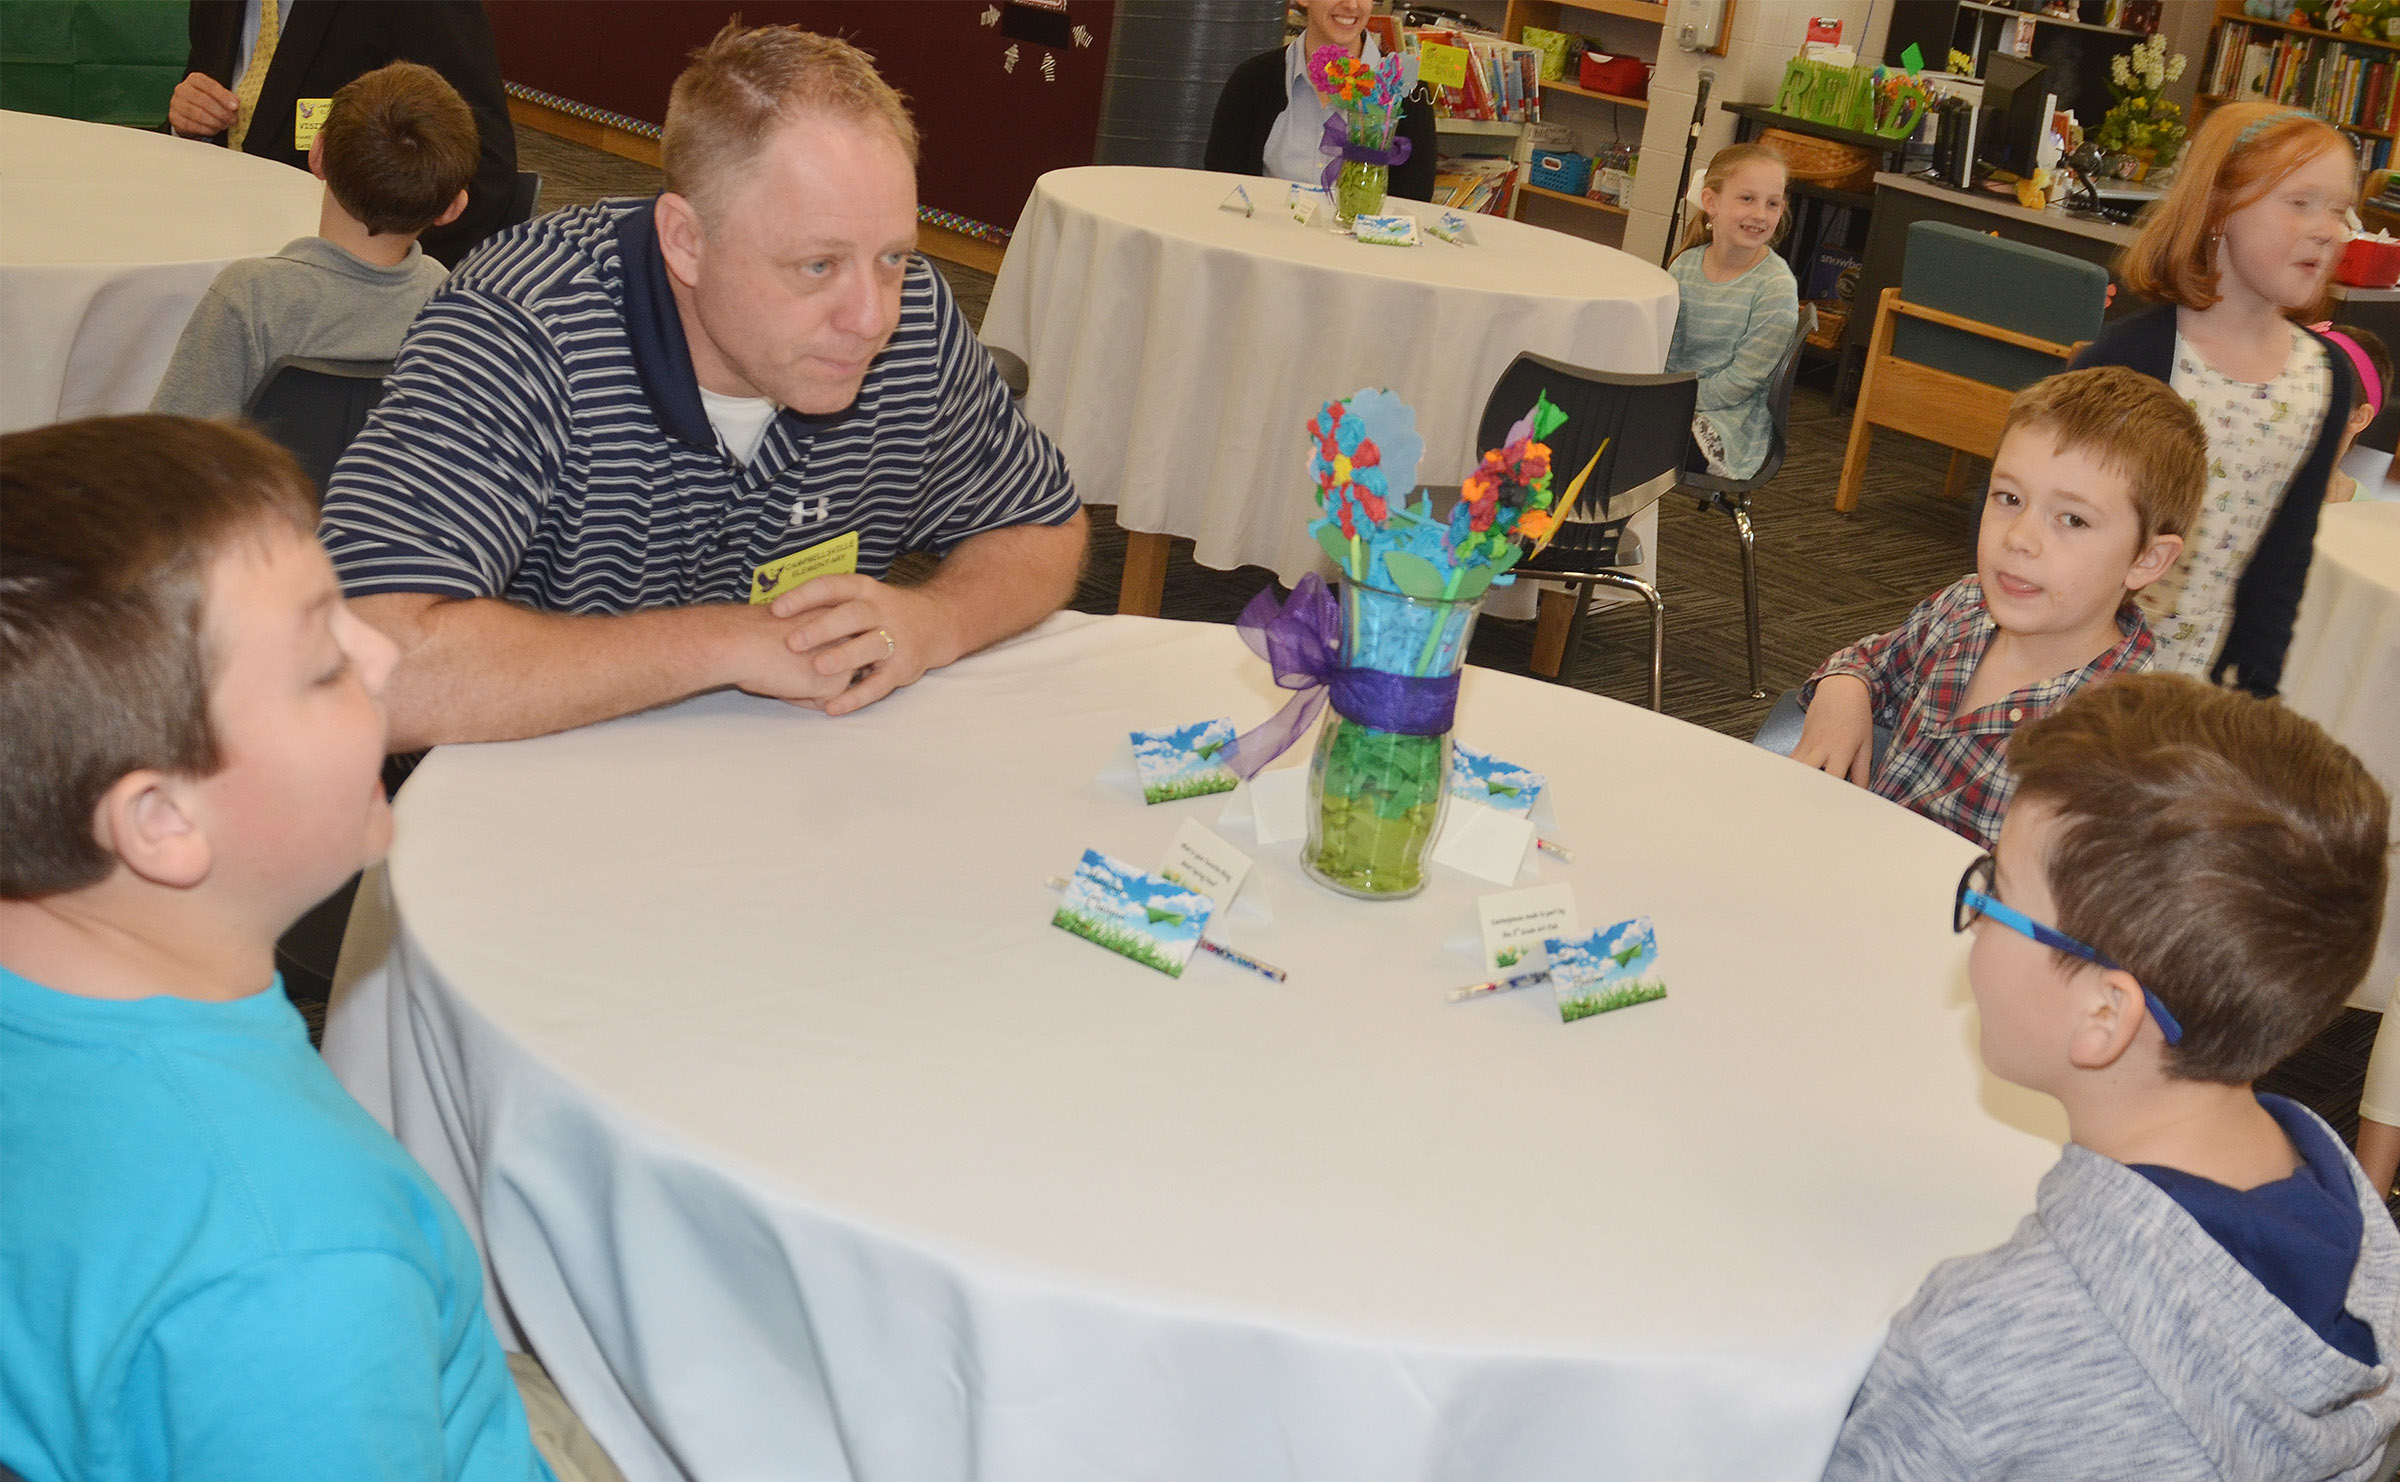 Brian Rafferty, lead pastor at Elk Horn Baptist Church has lunch with, from left, second-graders Hayden Maupin, Alijah Henderson and Tye Rhodes.